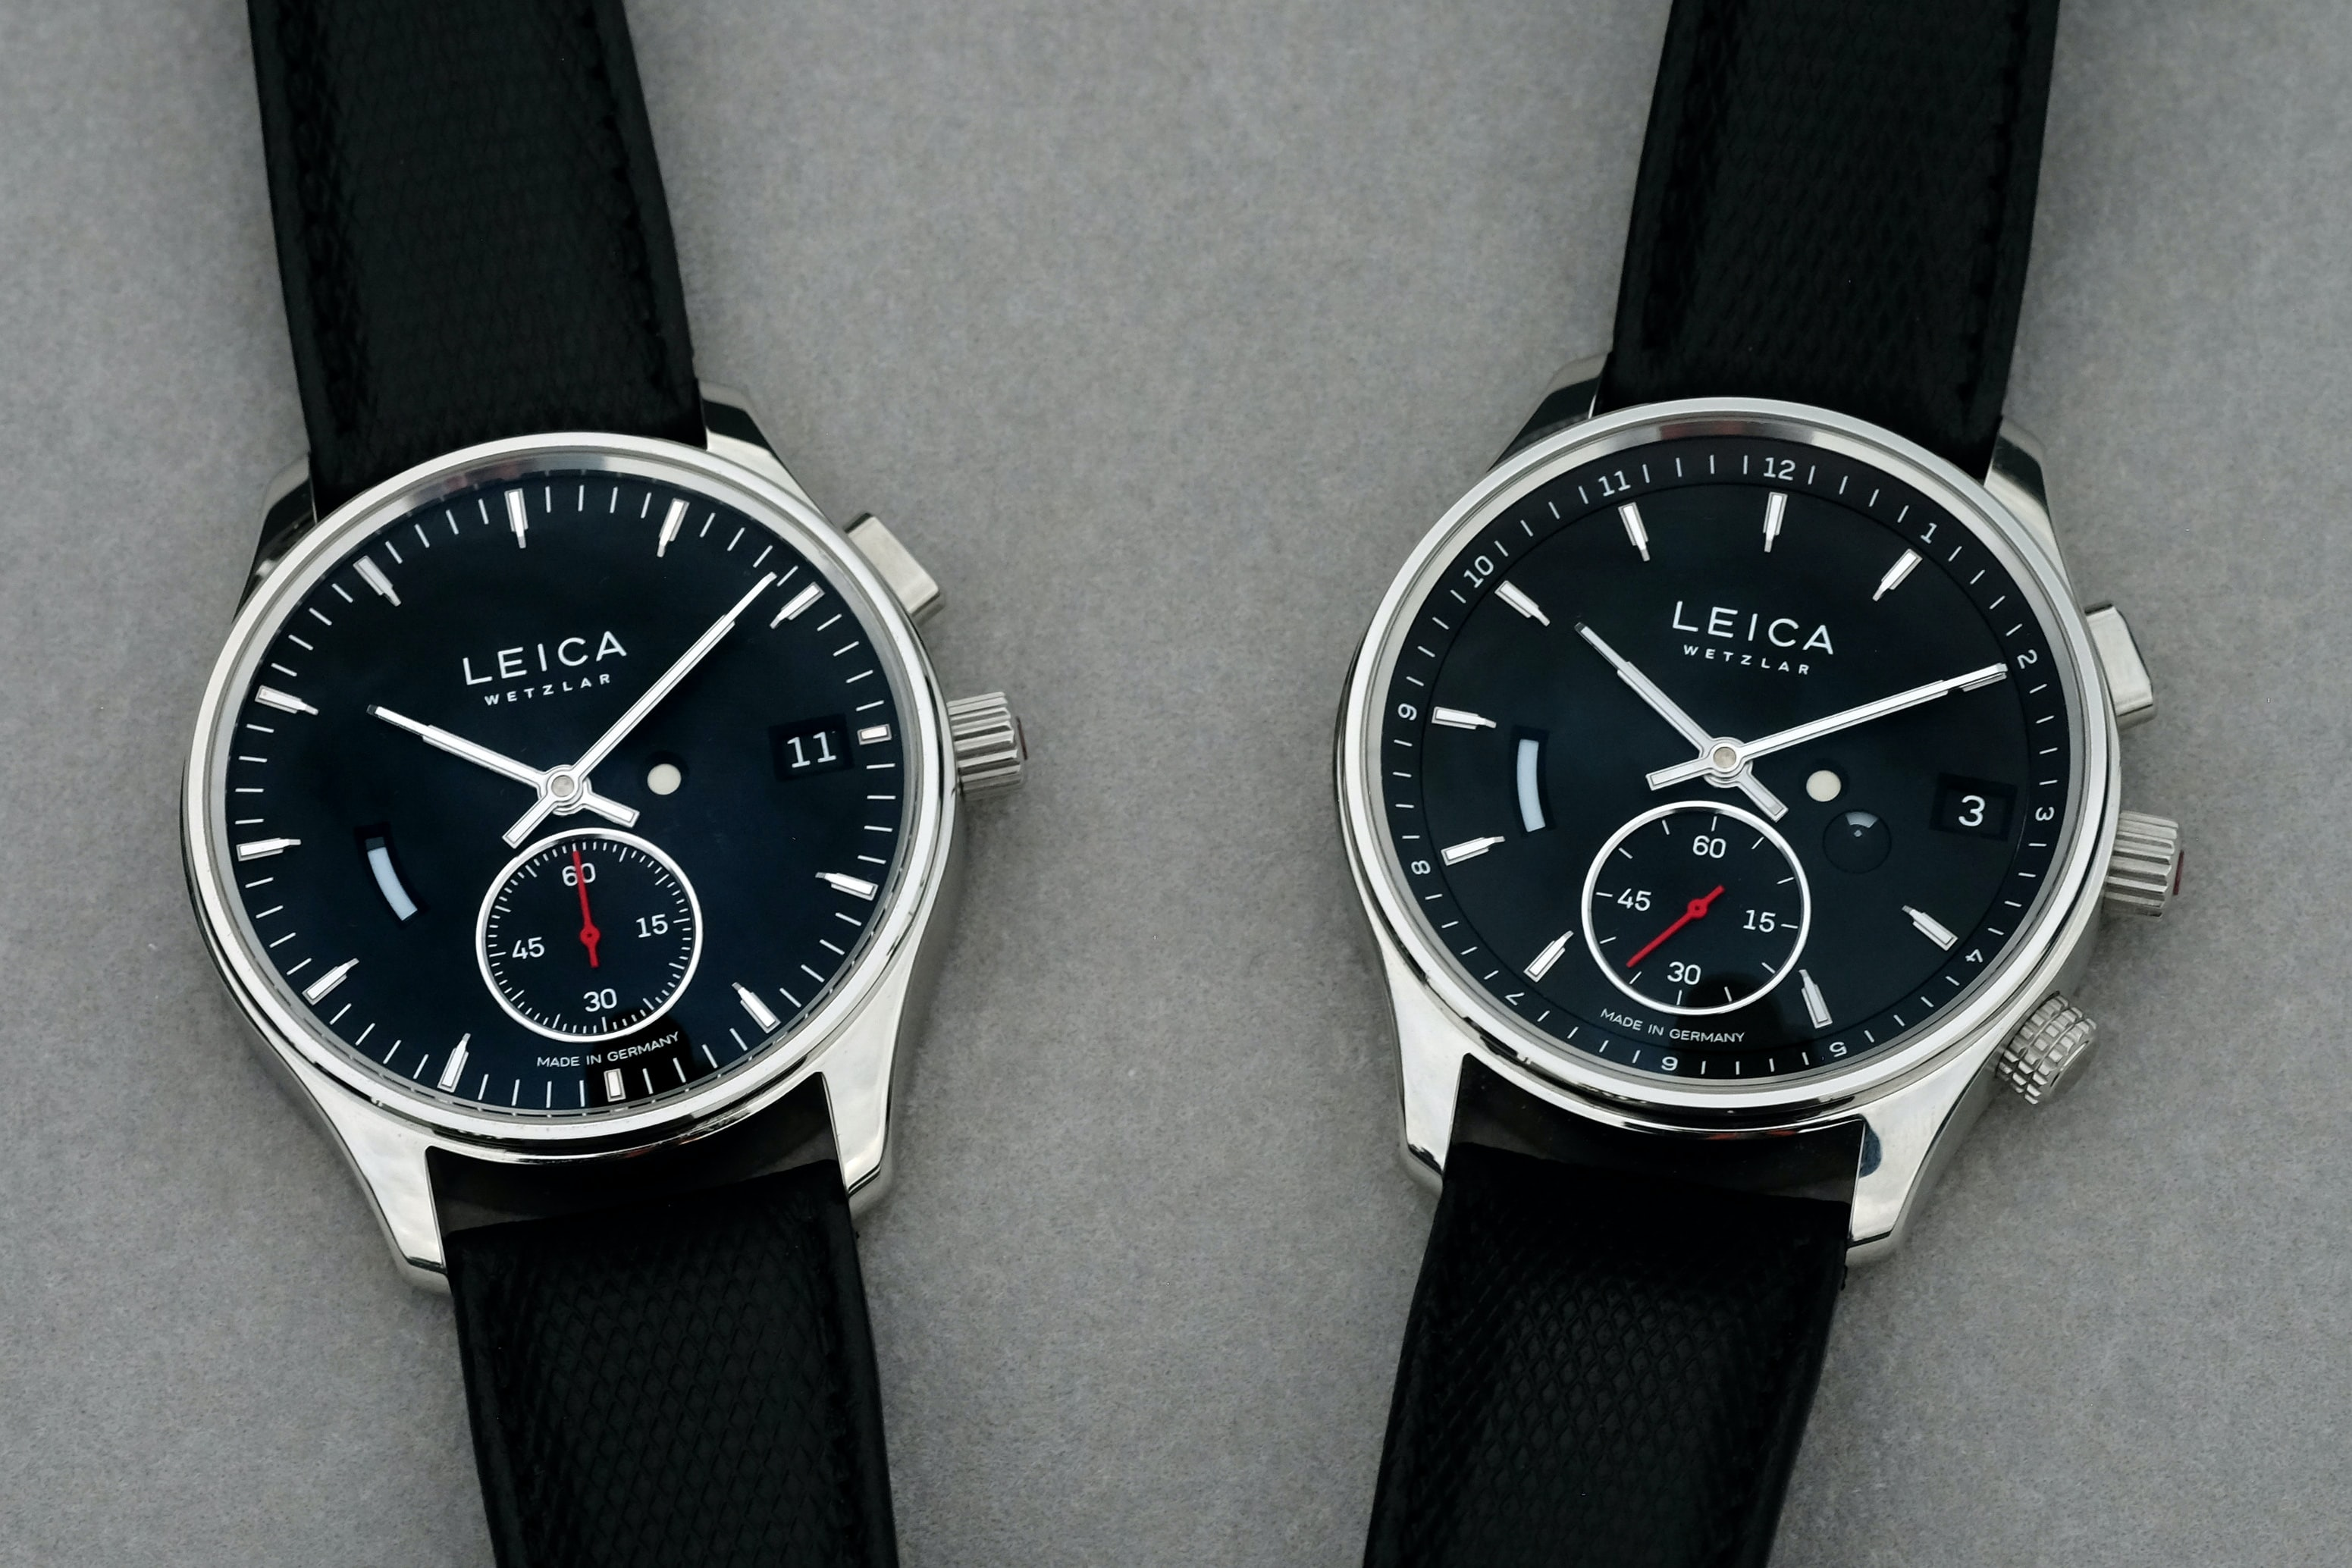 Introducing: The Leica L1 And L2 Watches (Live Pics & Details) Leica 15